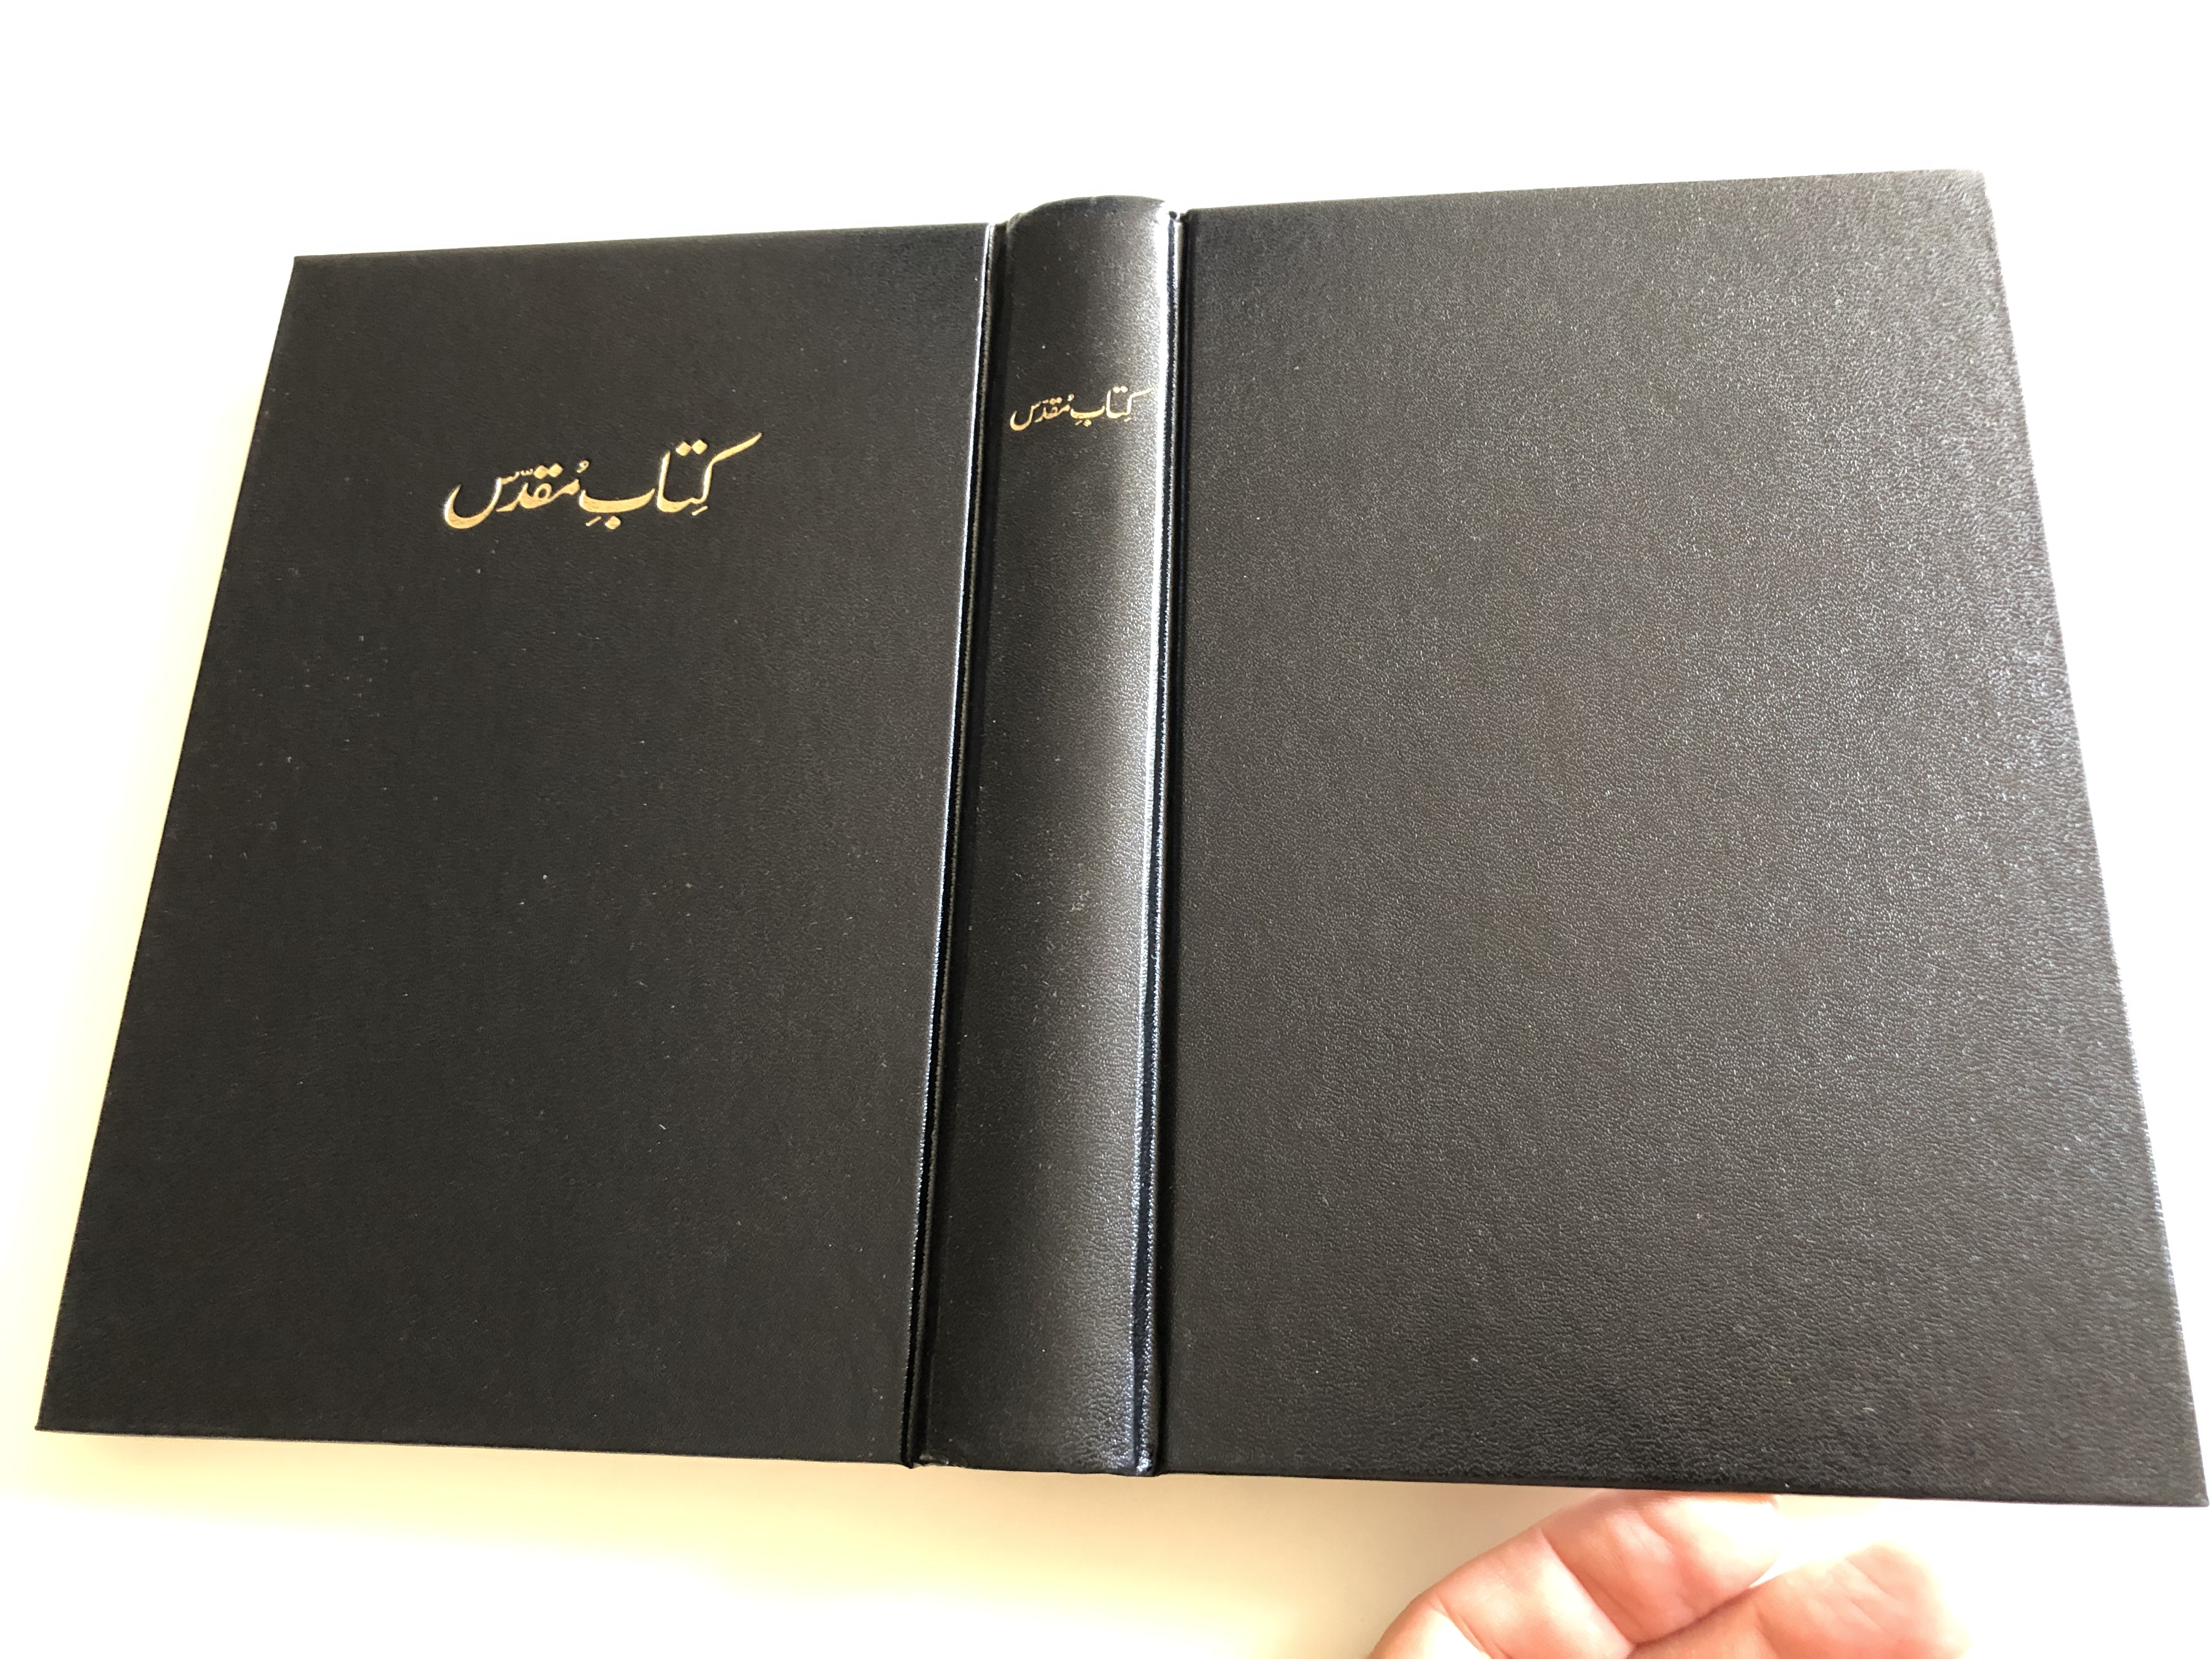 holy-bible-in-urdu-language-revised-version-pakistan-bible-society-2019-hardcover-black-22-.jpg